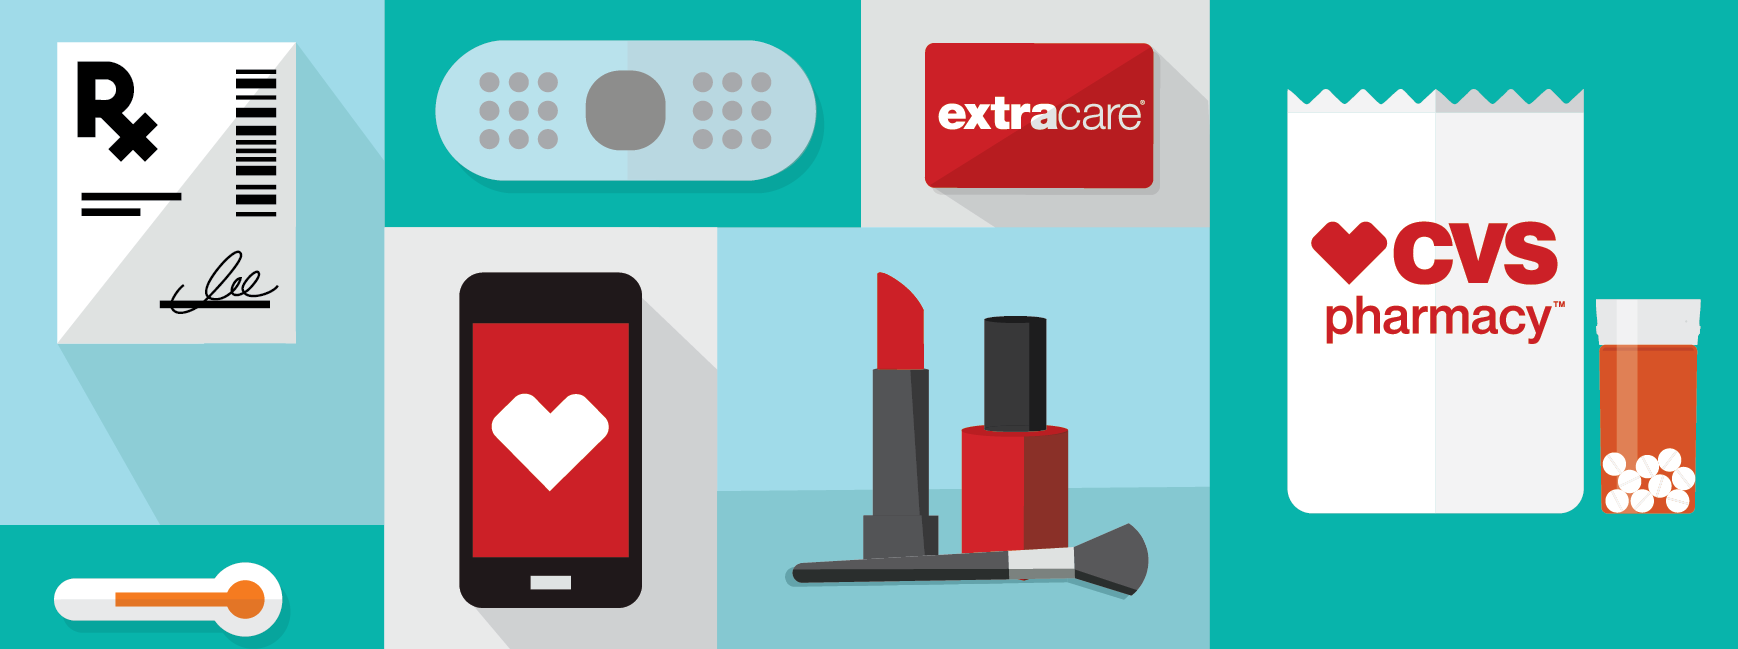 CVS Pharmacy ExtraCare Program